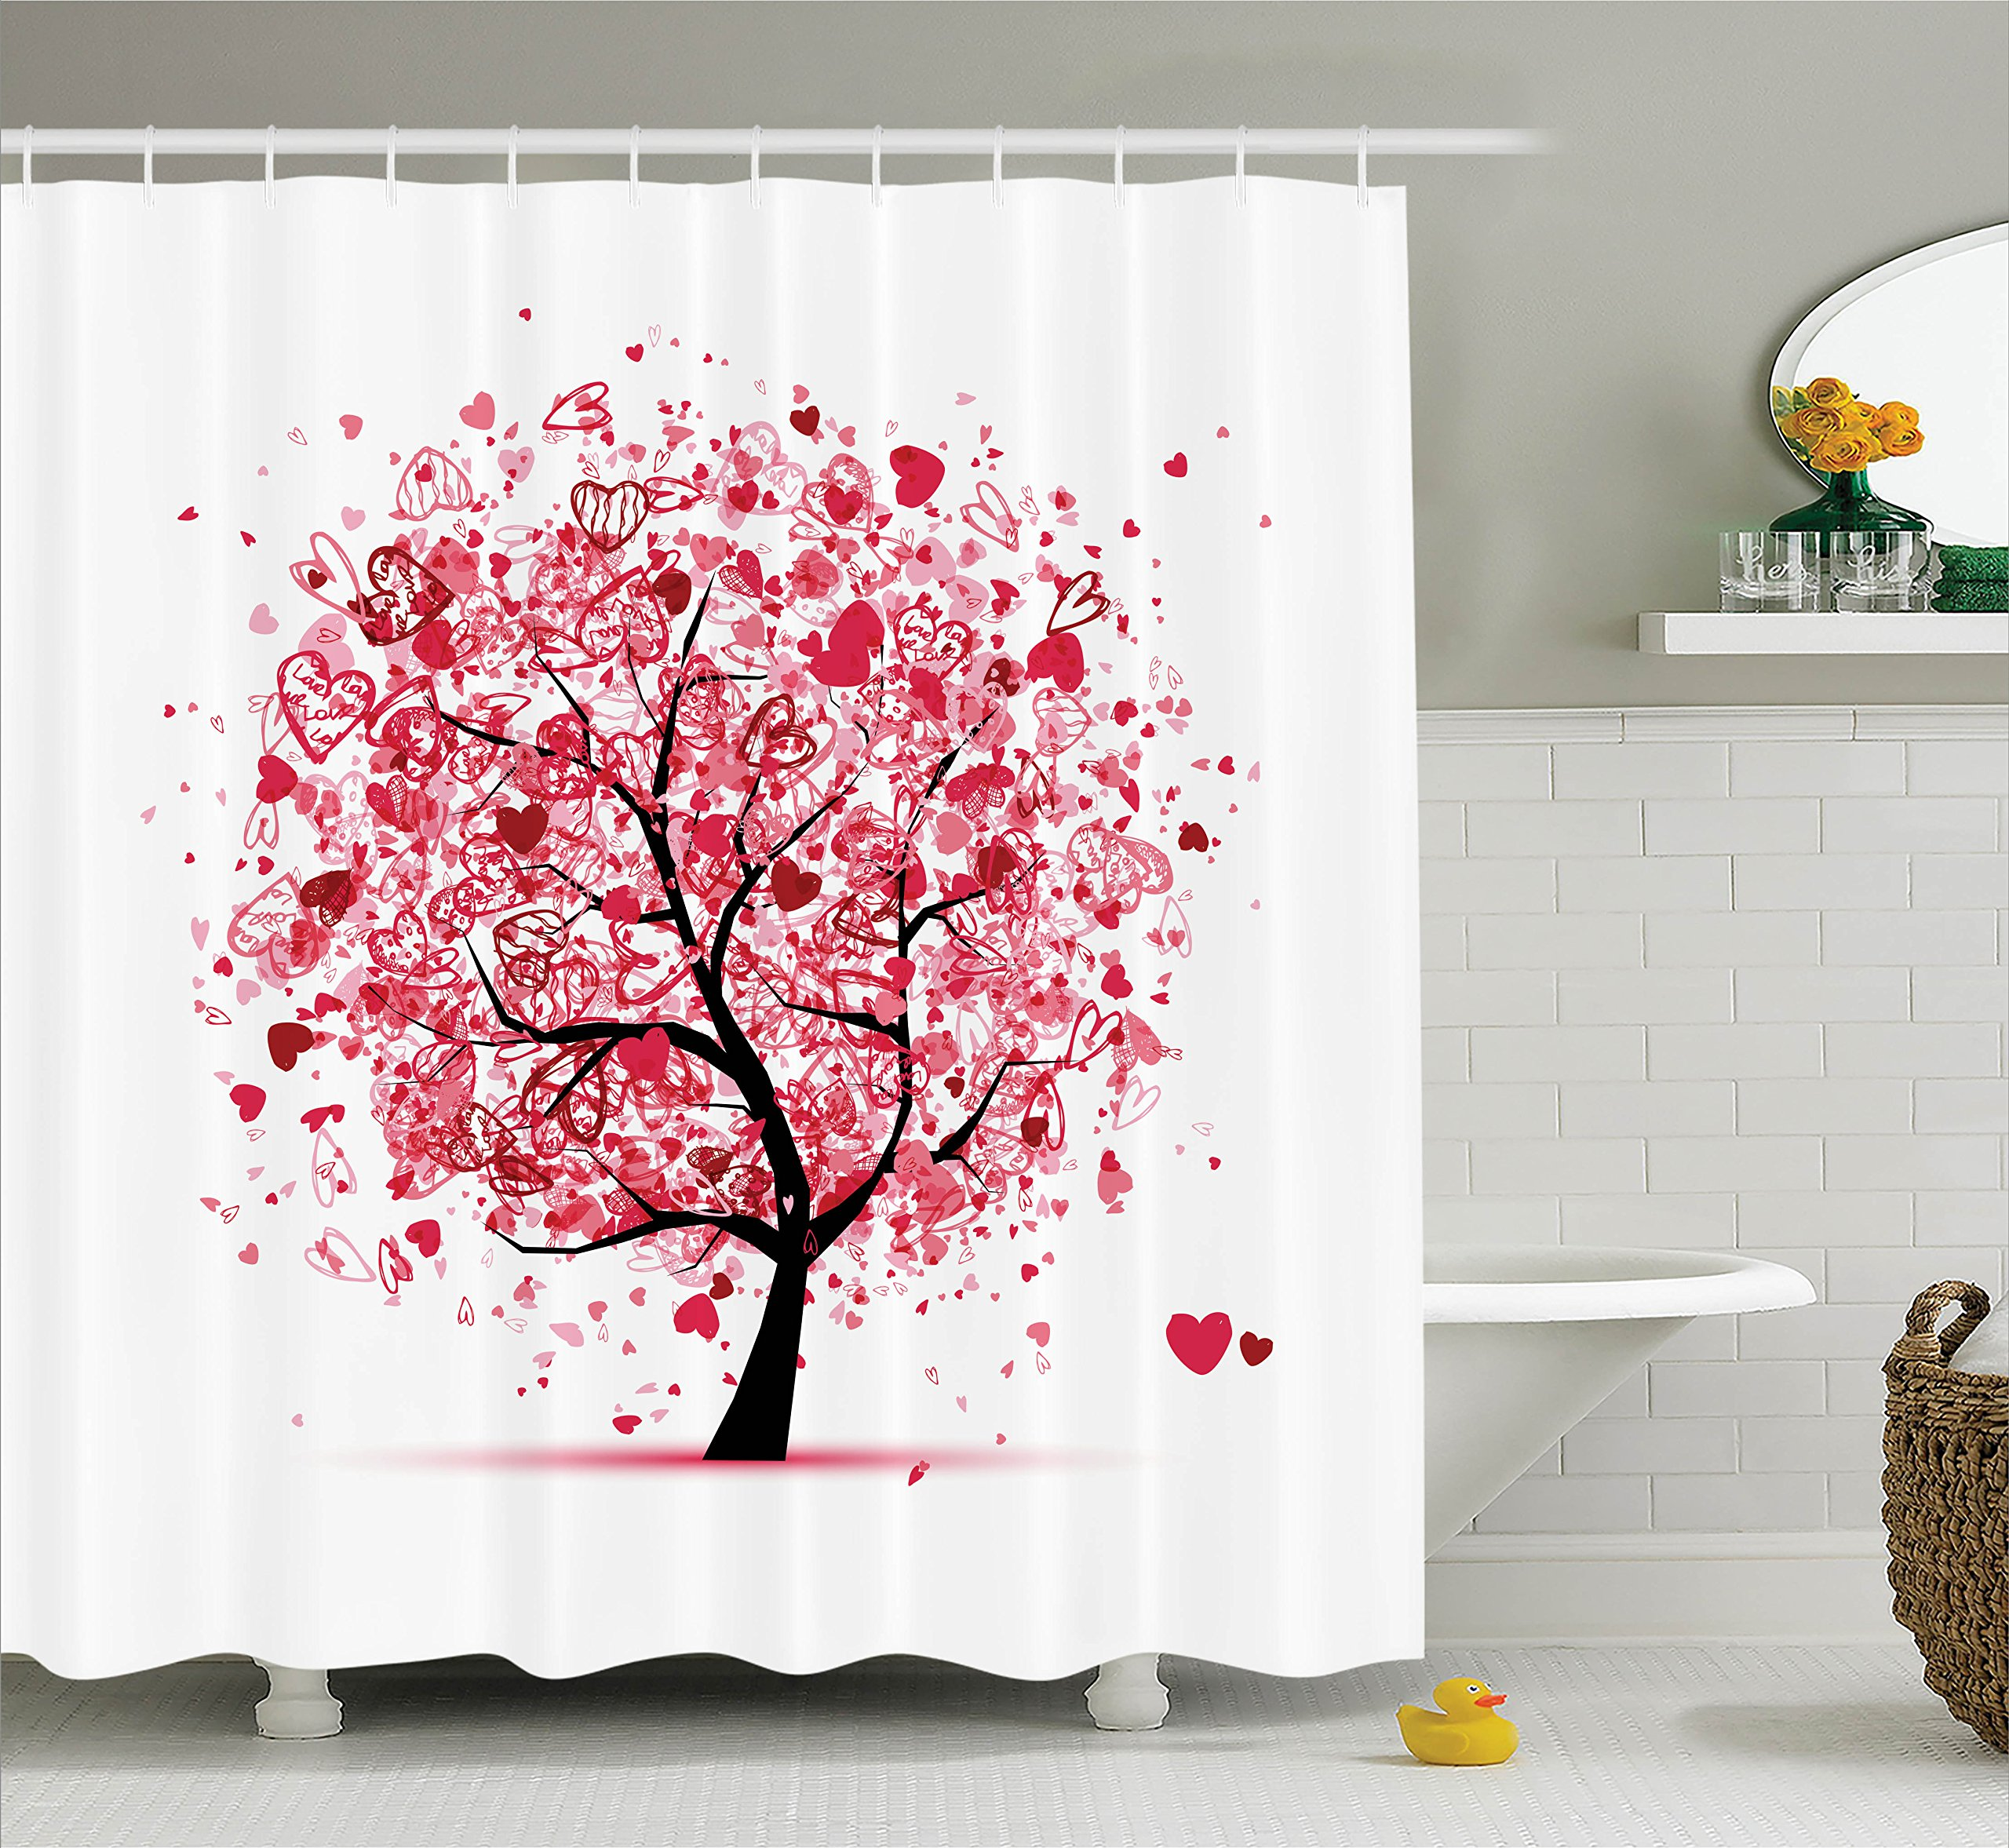 Ambesonne Tree of Life Decor Collection, Ornate Valentine Tree with Swirling Hearts Doodles Love Future Couple Decorative , Polyester Fabric Bathroom Shower Curtain Set with Hooks, Red Black